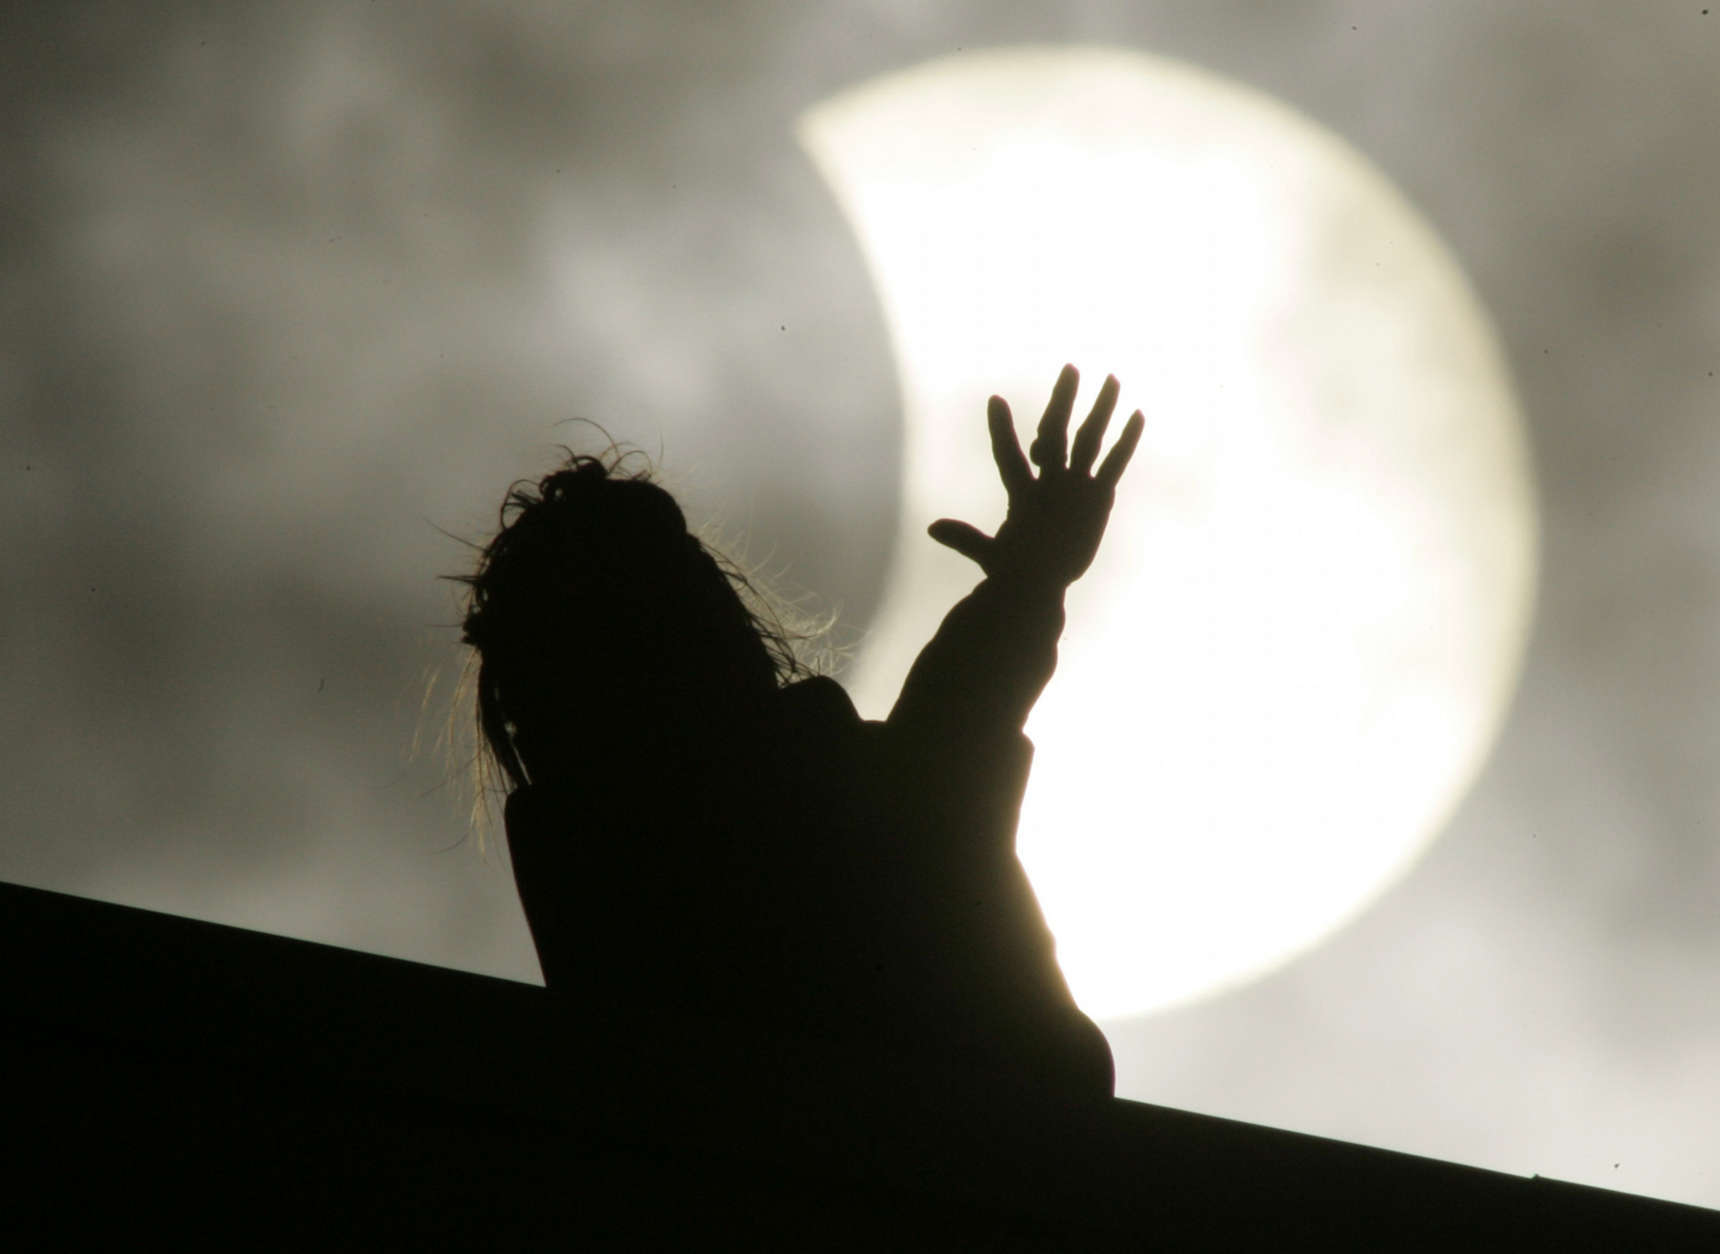 A woman looks at the moon partly covering the sun, during a partial solar eclipse, in St.Petersburg, Russia, Friday, Aug. 1, 2008. (AP Photo/Dmitry Lovetsky)